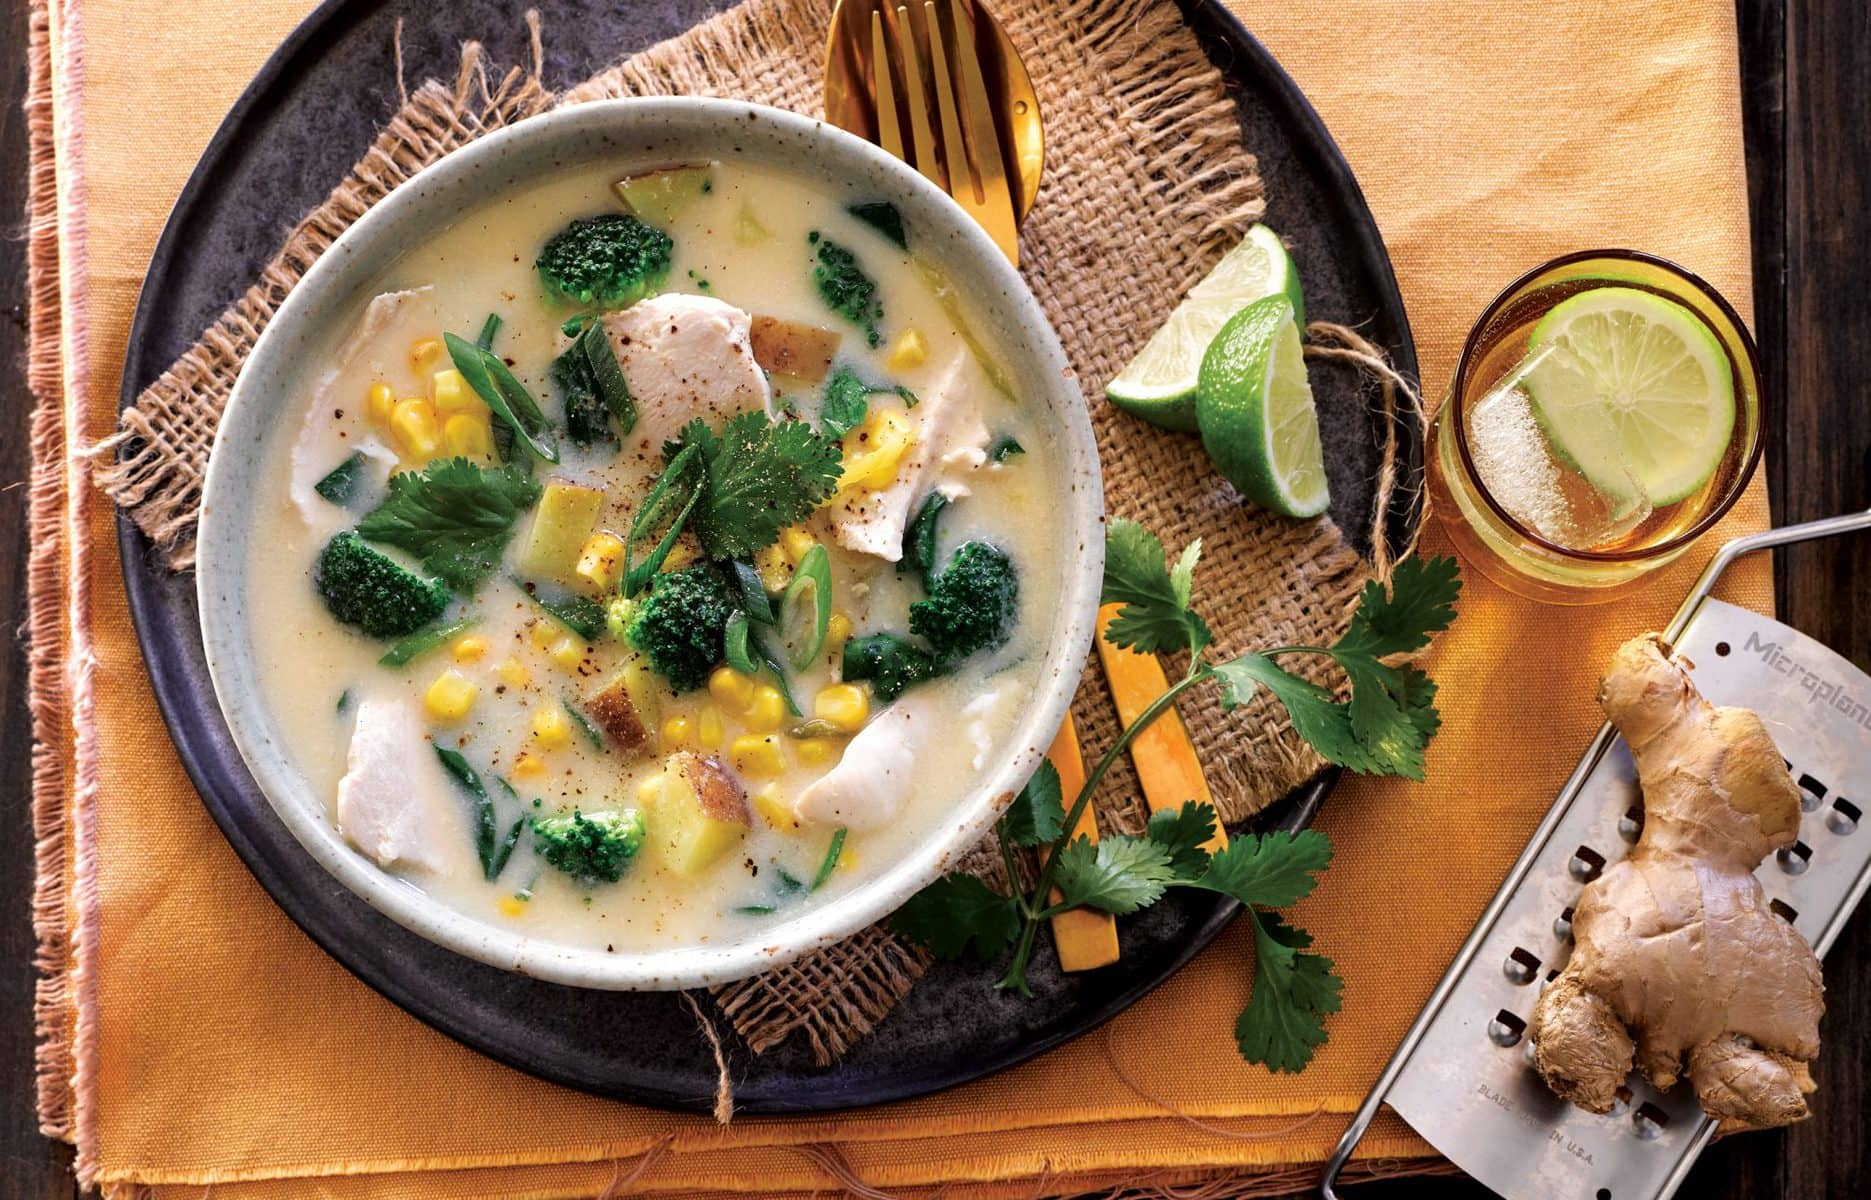 Quick chicken, corn and broccoli soup